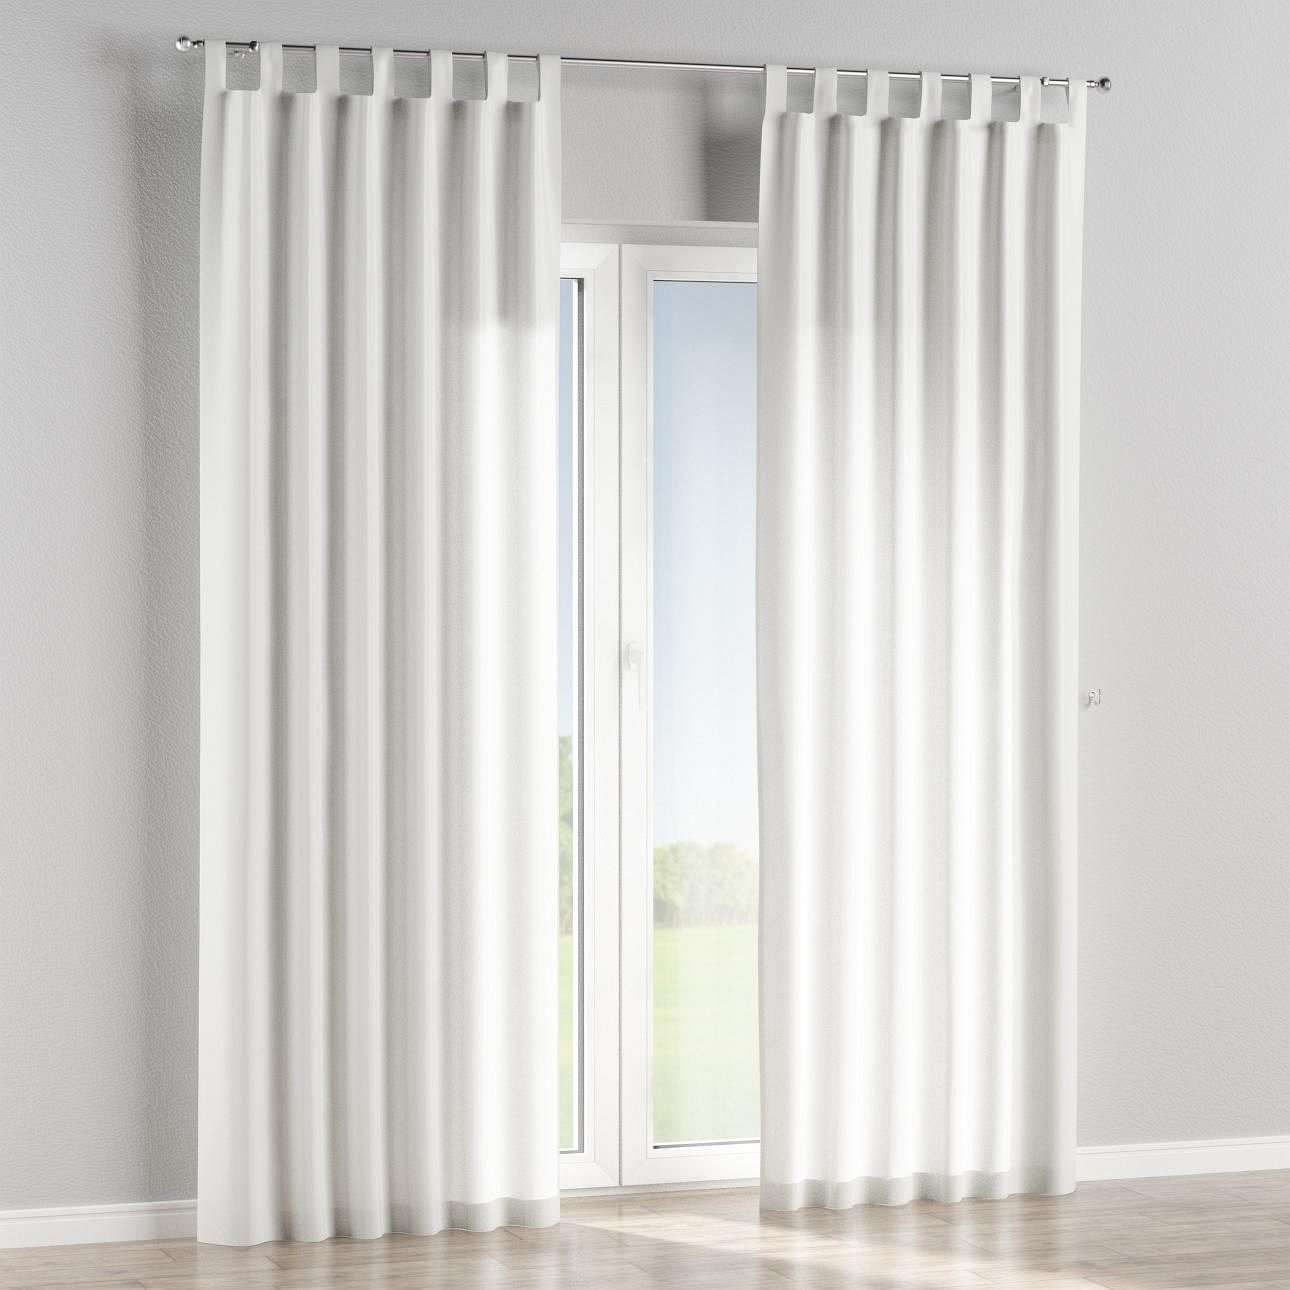 Tab top curtains in collection SALE, fabric: 135-11